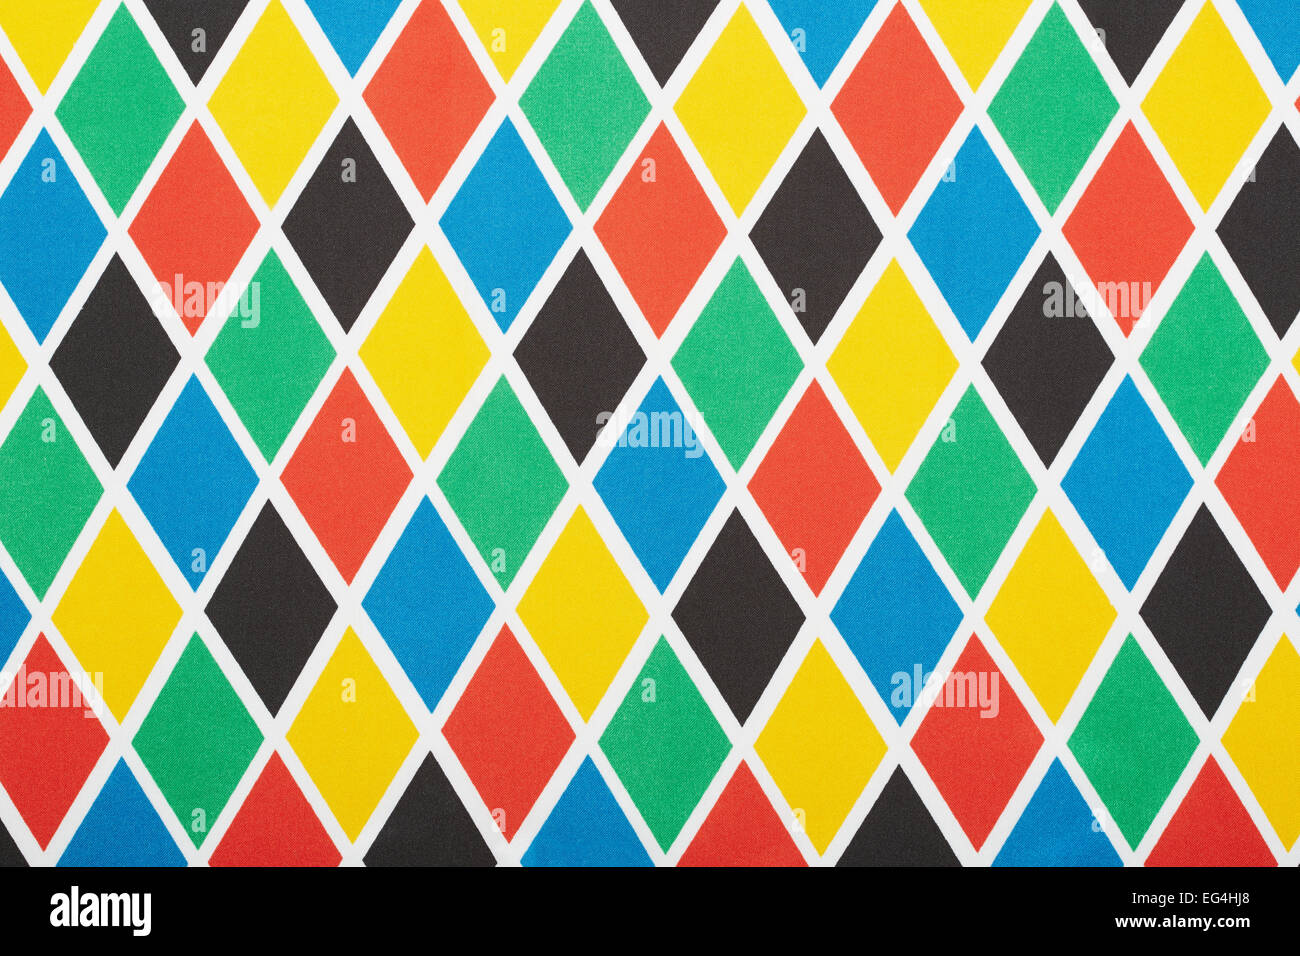 Harlequin colorful diamond pattern, texture background - Stock Image